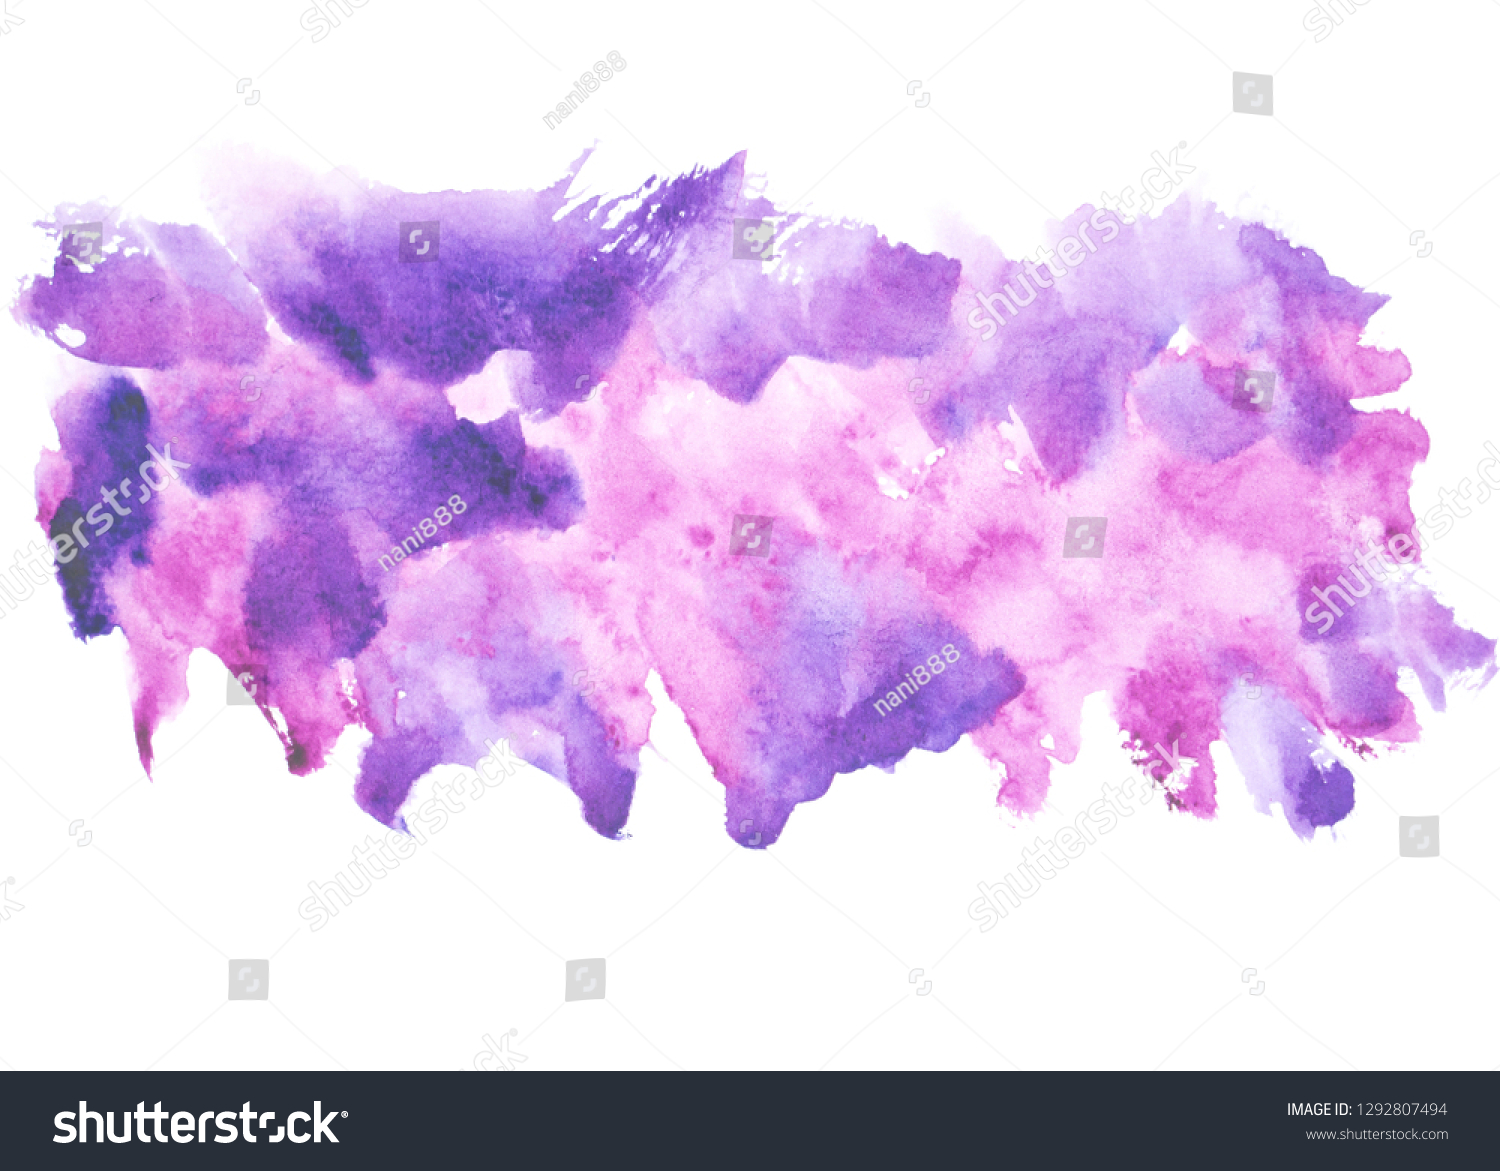 Purple Watercolor Painting Ideas Colorful Shades Stock Illustration 1292807494